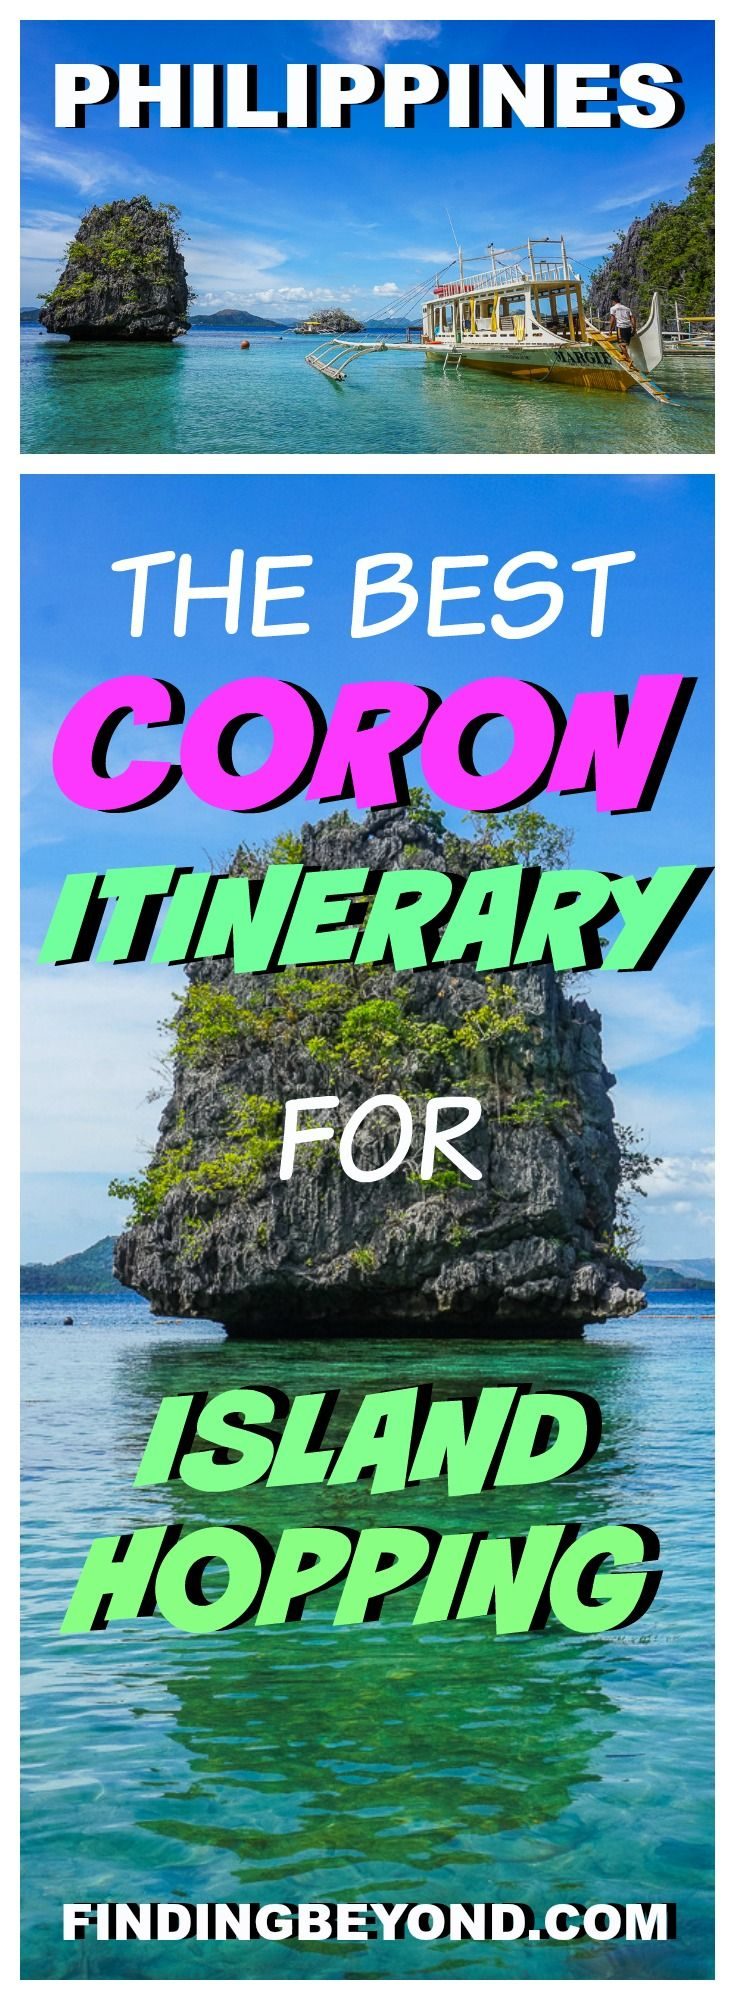 Check out our tried and tested best Coron itinerary which includes Coron Island hopping, awesome accommodation in Coron town and how to get there. | It's more fun in the Phillipines | Top Places To Visit In Philippines | Best beaches in the Philippines | Must see places in the Philippines | Backpacking Philippines | Philippines on a Budget | Top attractions in  Coron | Best boat tours in Coron  | Best activities in Coron Philippines | Highlights of Coron  |